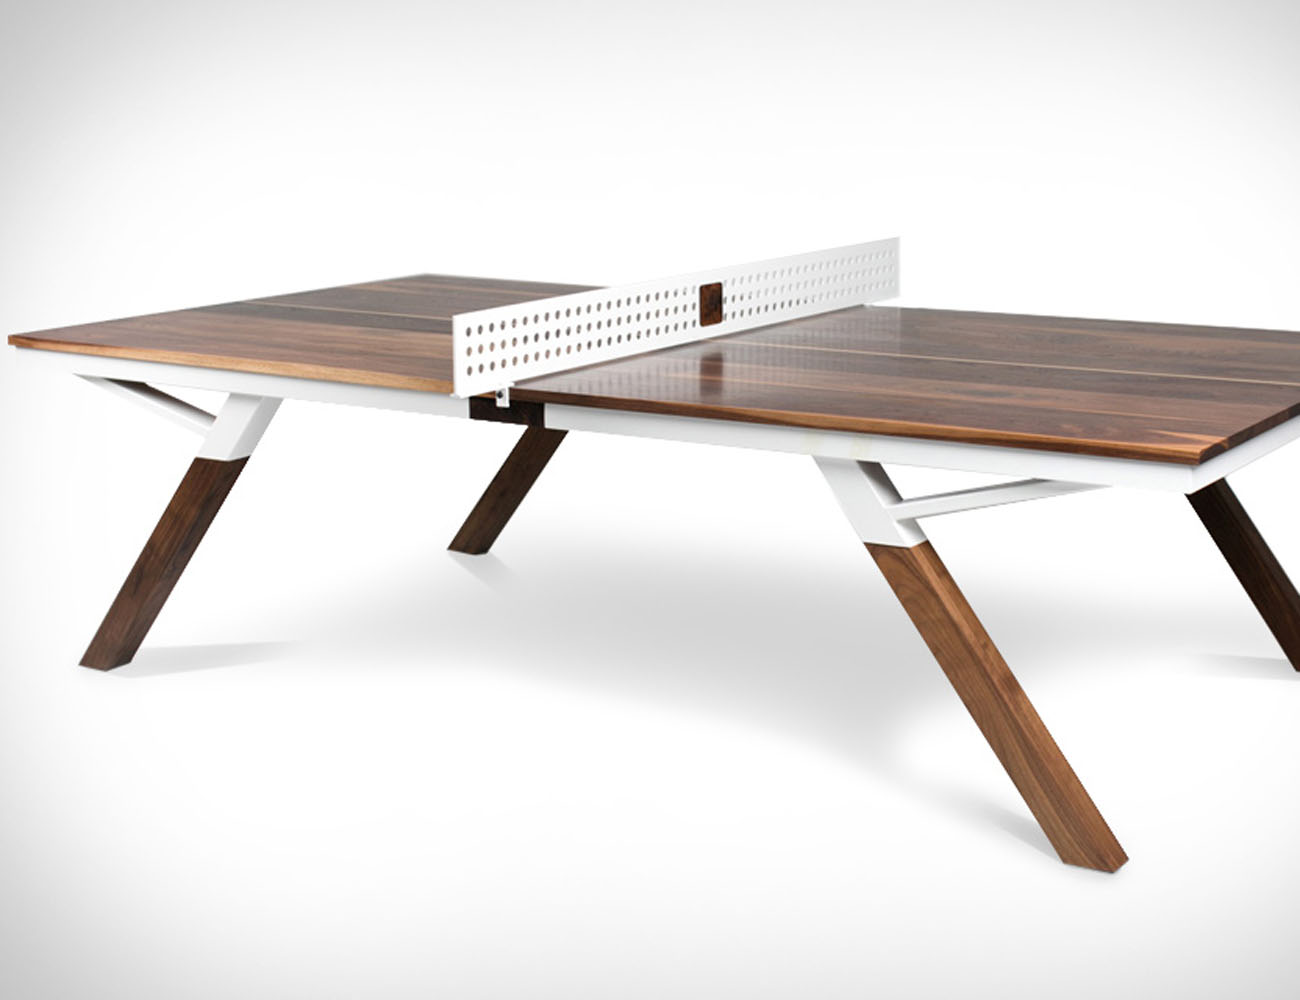 You and Me Ping Pong Table – Works As A Dining Table Too